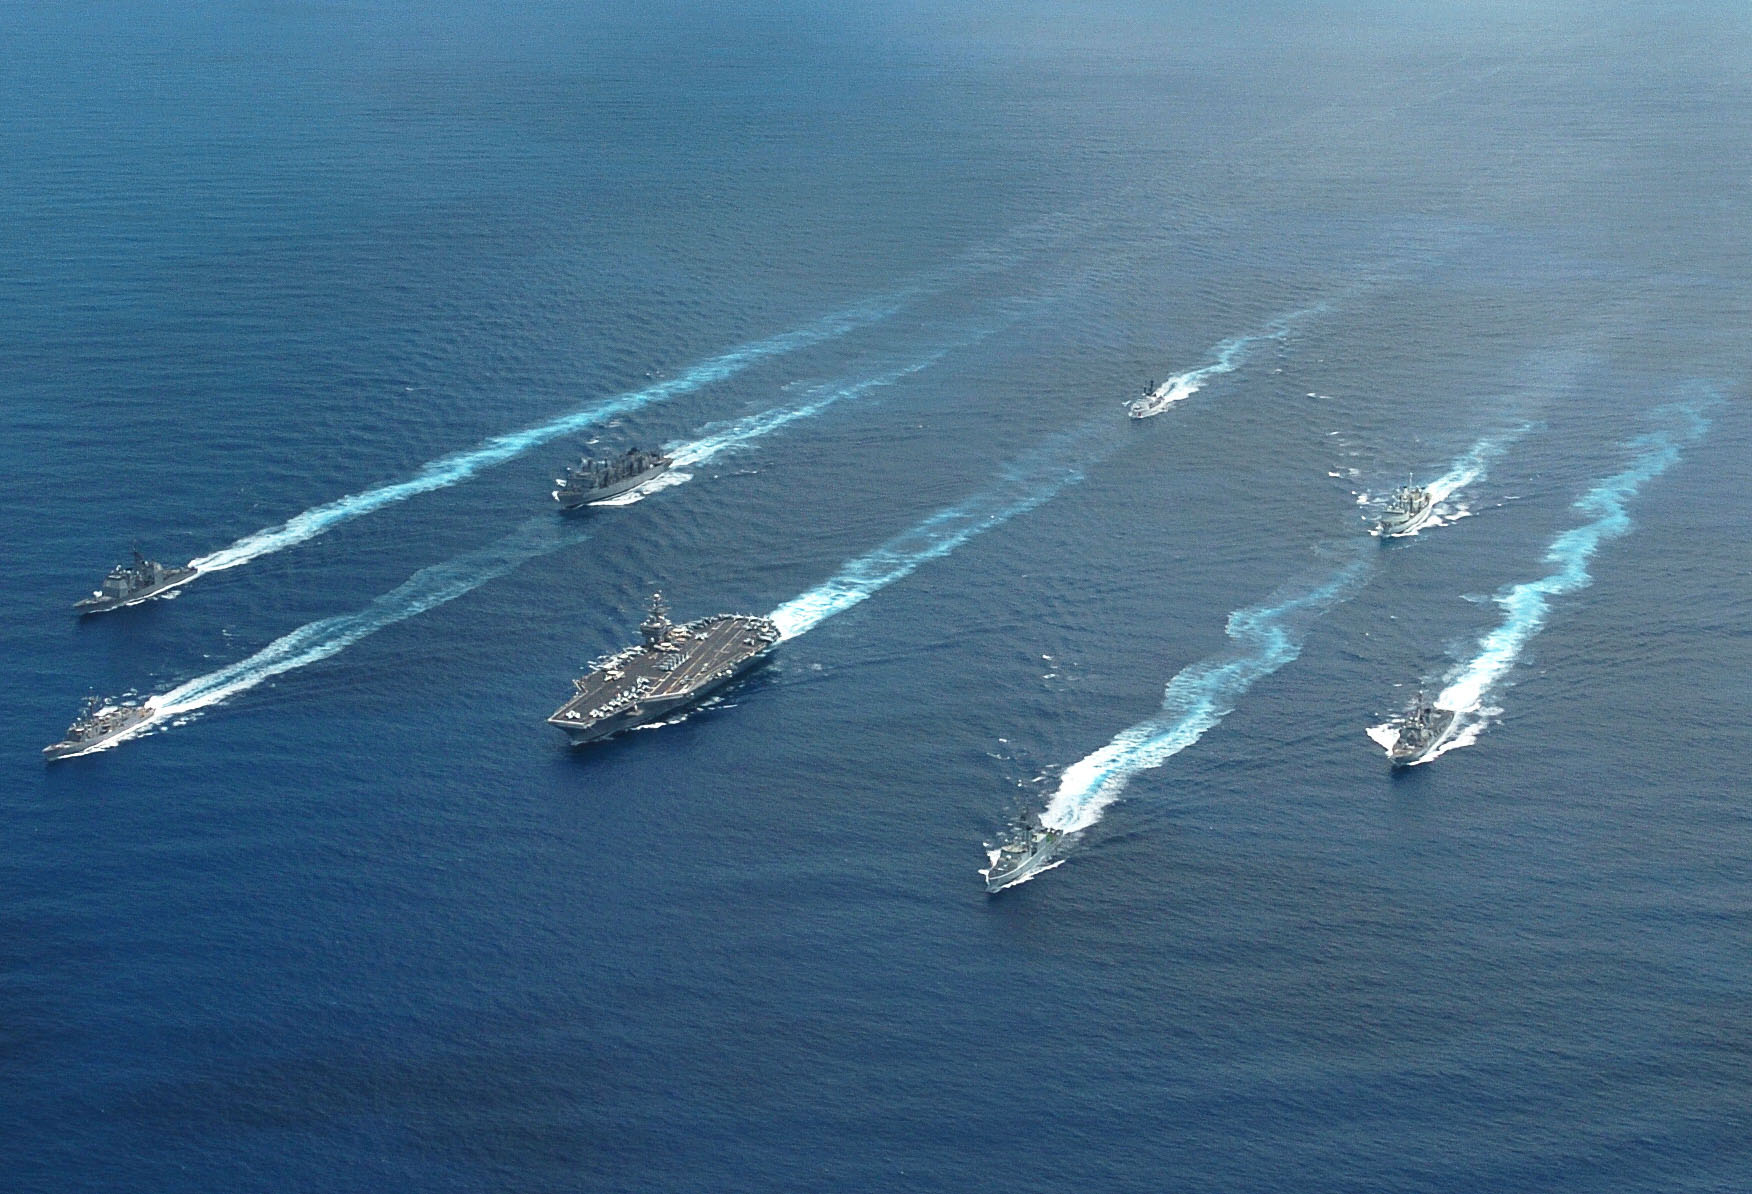 040625-N-9769P-245 Pacific Ocean (June 25, 2004) Ð Ships from the United States and Canada navigate around the aircraft carrier USS John C. Stennis (CVN 74) while underway in the Pacific Ocean during a multi-national photo exercise. Stennis and embarked Carrier Air Wing Fourteen (CVW-14) are at sea on a scheduled deployment, and is expected to participate in Rim of the Pacific (RIMPAC) 2004. RIMPAC is the largest international maritime exercise in the waters around the Hawaiian Islands.  This years exercise will include eight participating nations; Australia, Canada, Chile, Japan, Peru, South Korea, Britain and the United States.  RIMPAC is intended to enhance the tactical proficiency of participating units in a wide array of combined operations at sea, while enhancing stability in the Pacific Rim region. U.S. Navy photo by Photographer's Mate 2nd Class Jayme Pastoric (RELEASED)